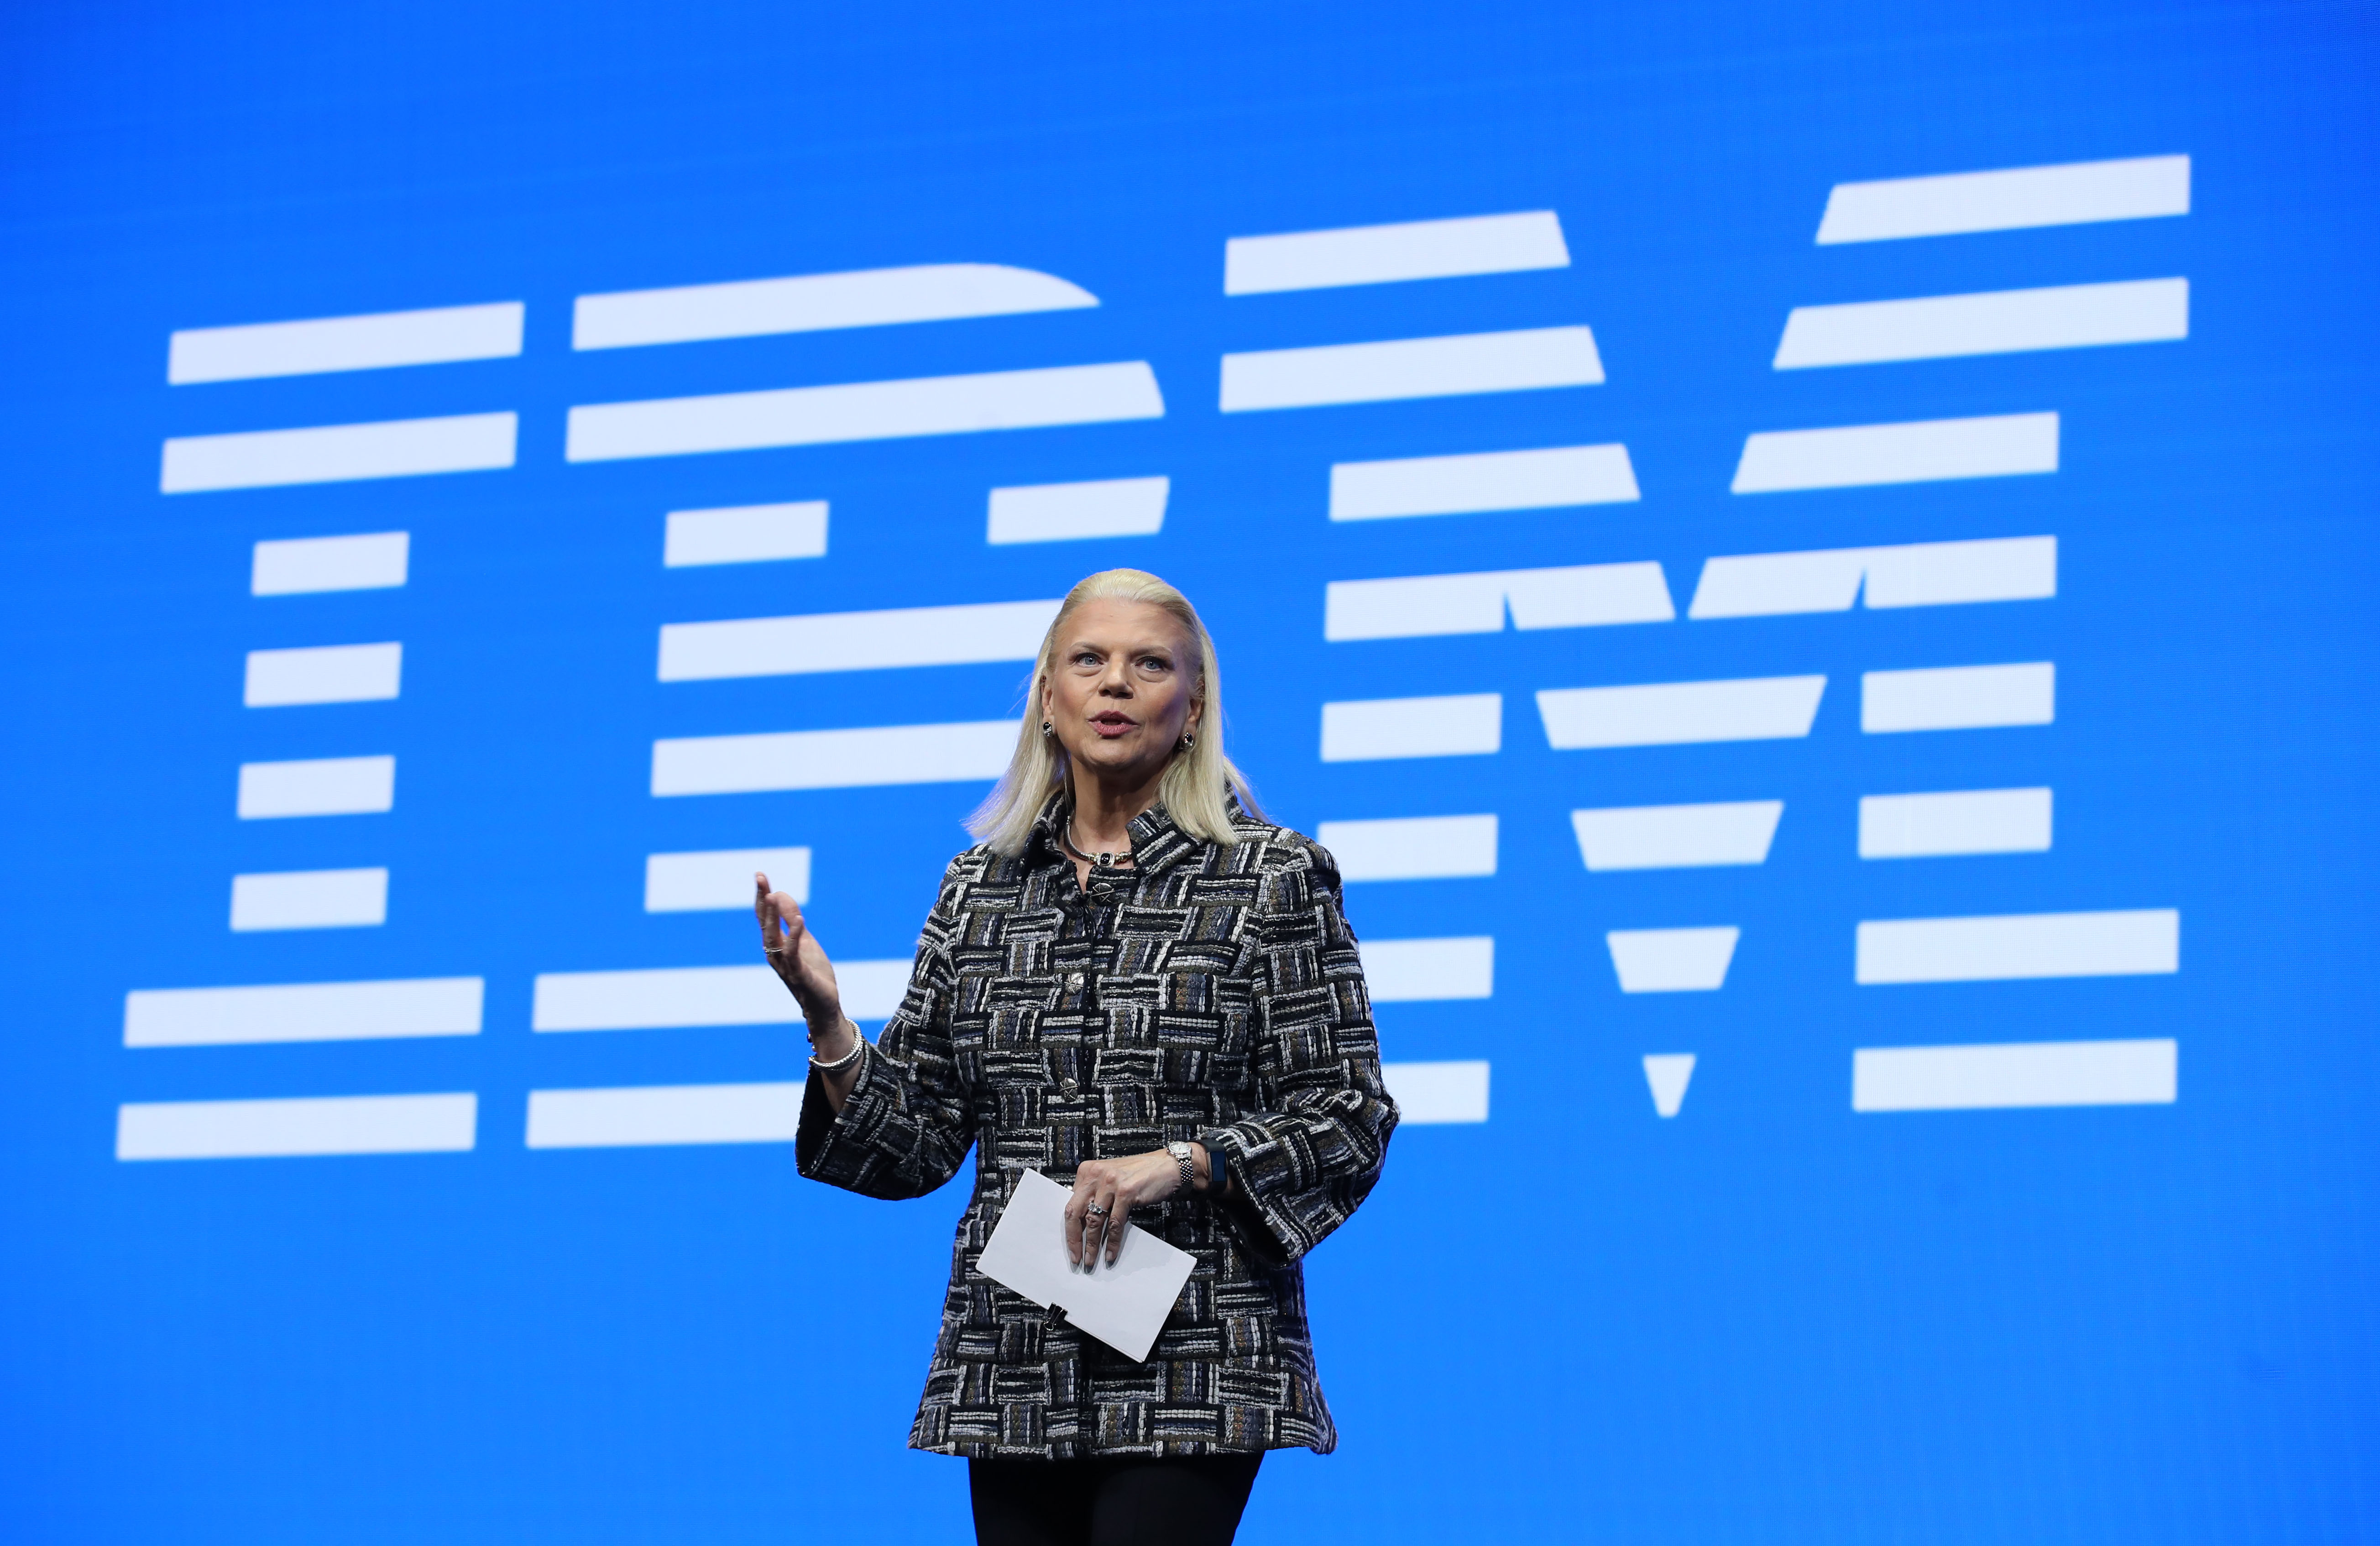 IBM CEO Says Company 'Never Overpromised' on Watson A I